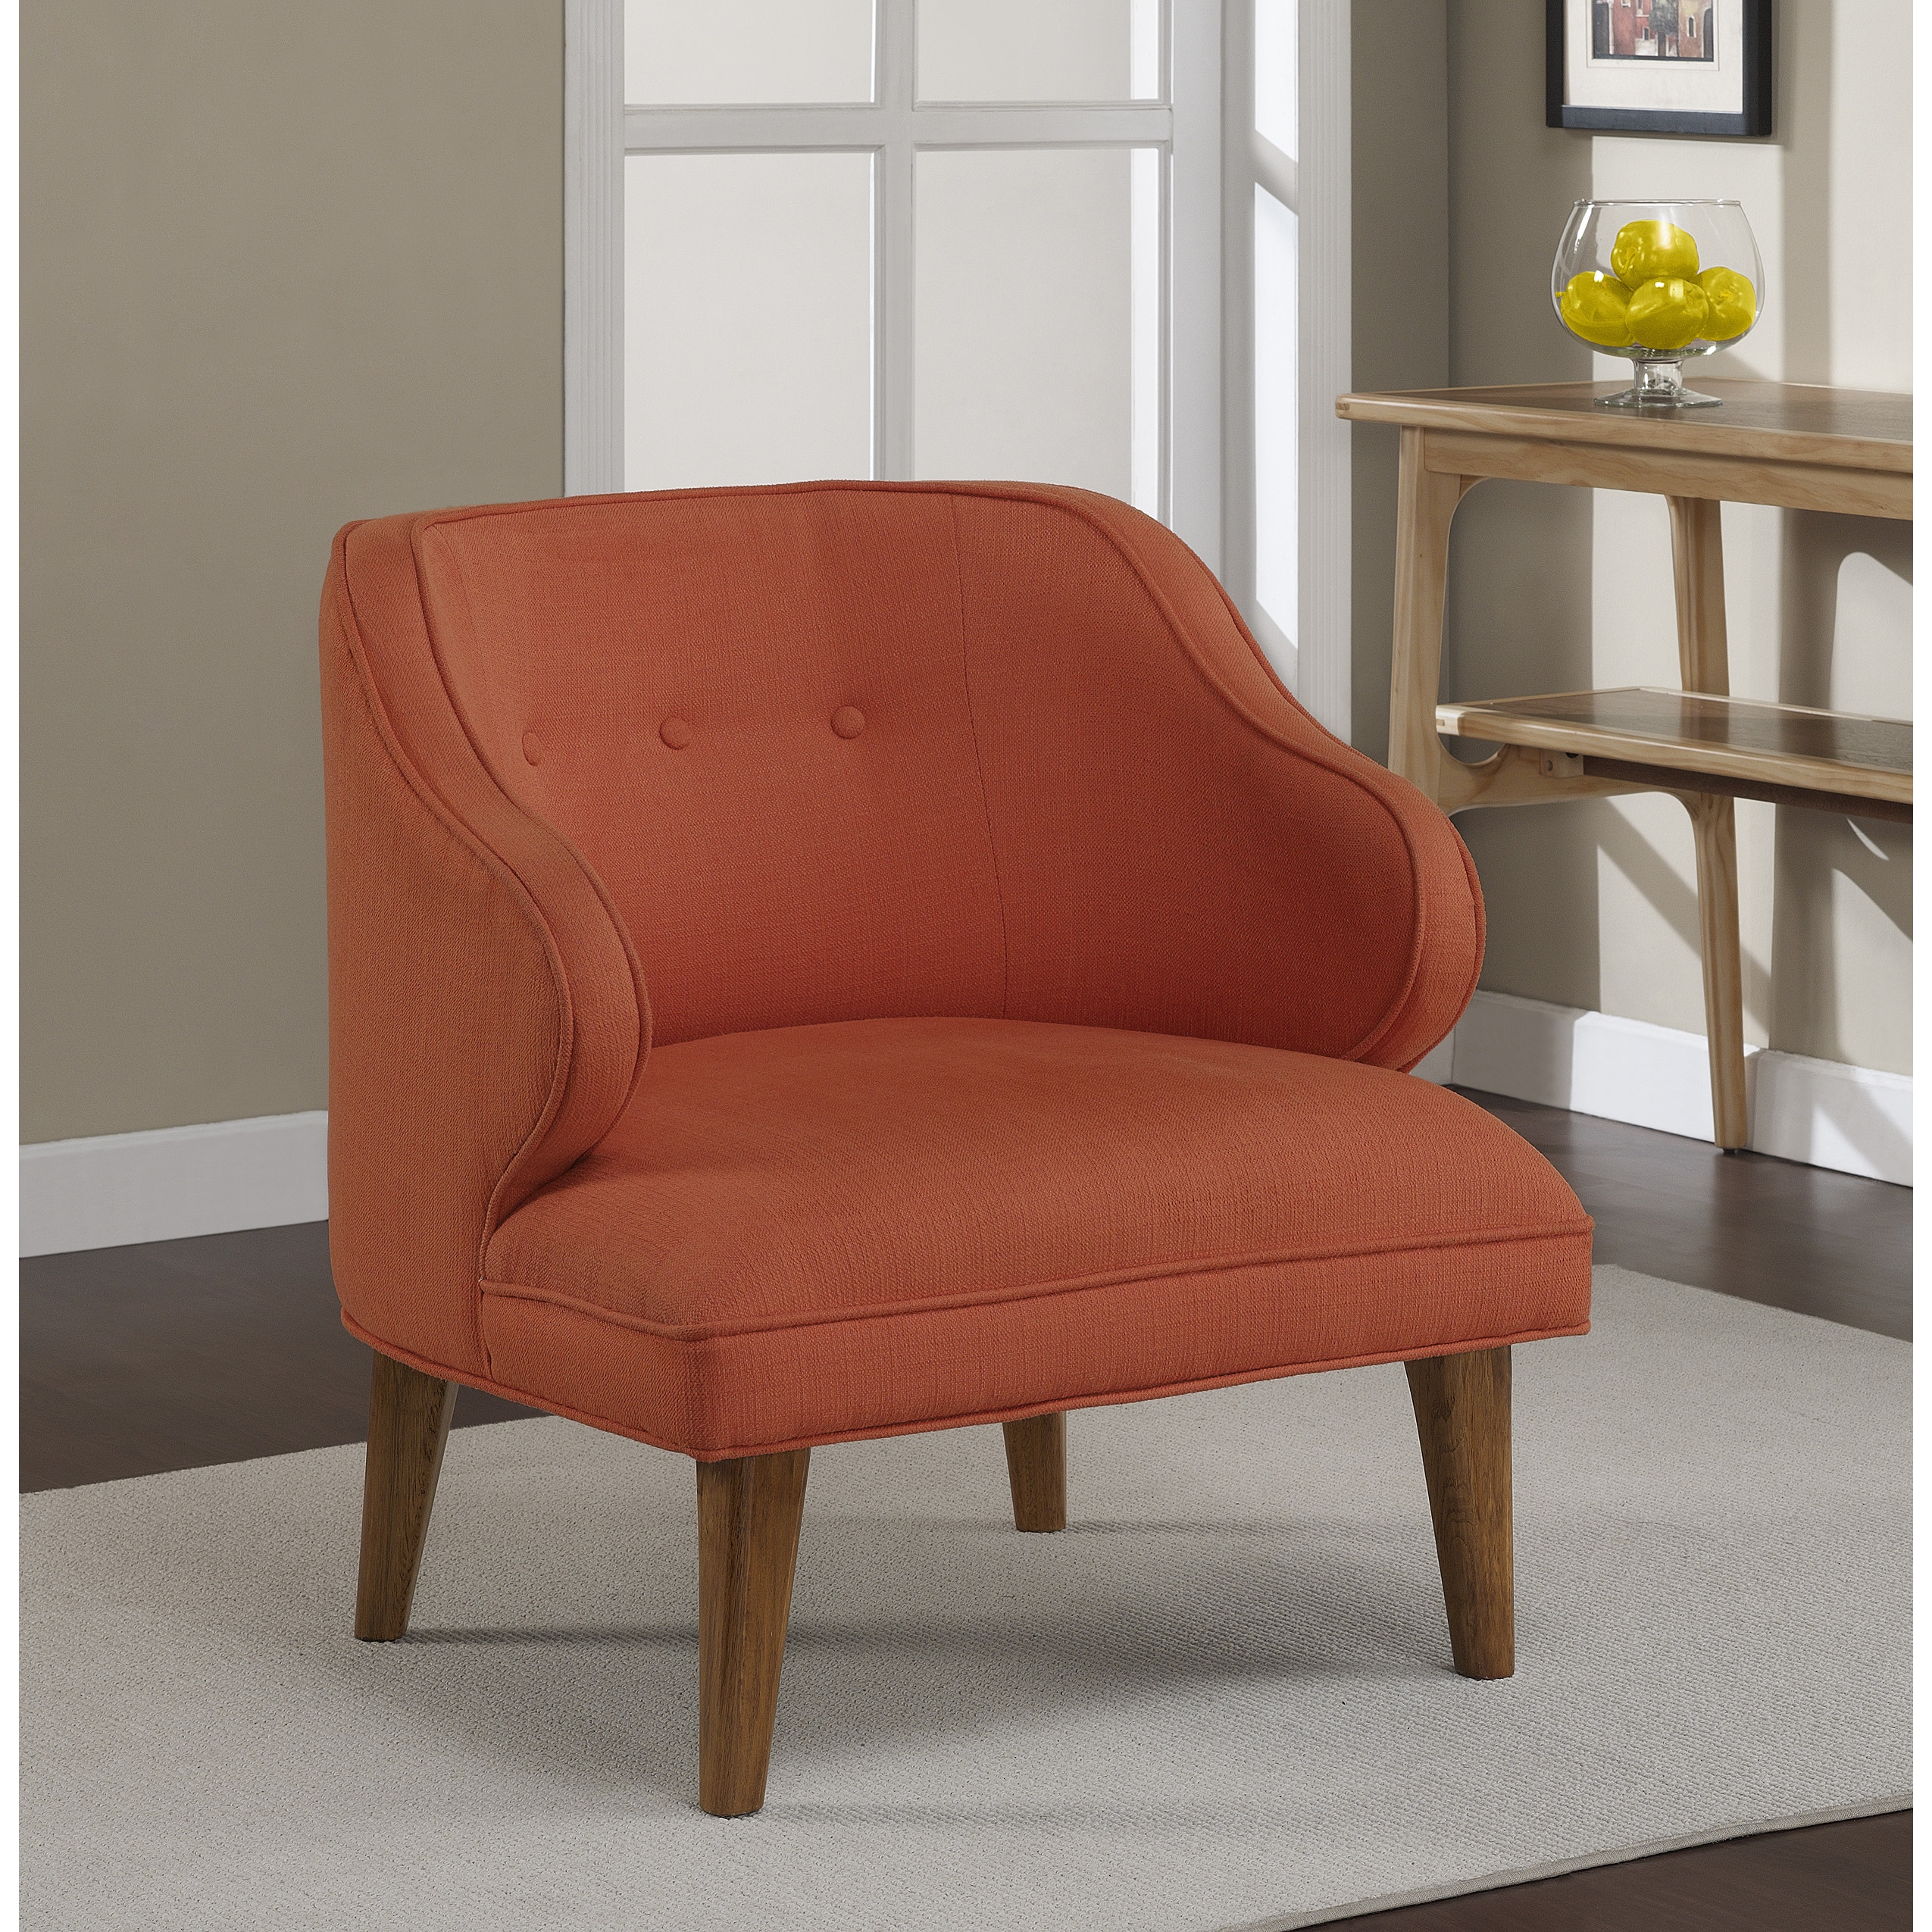 overstock arm chair shower with arms walgreens curved rust upholstered retro